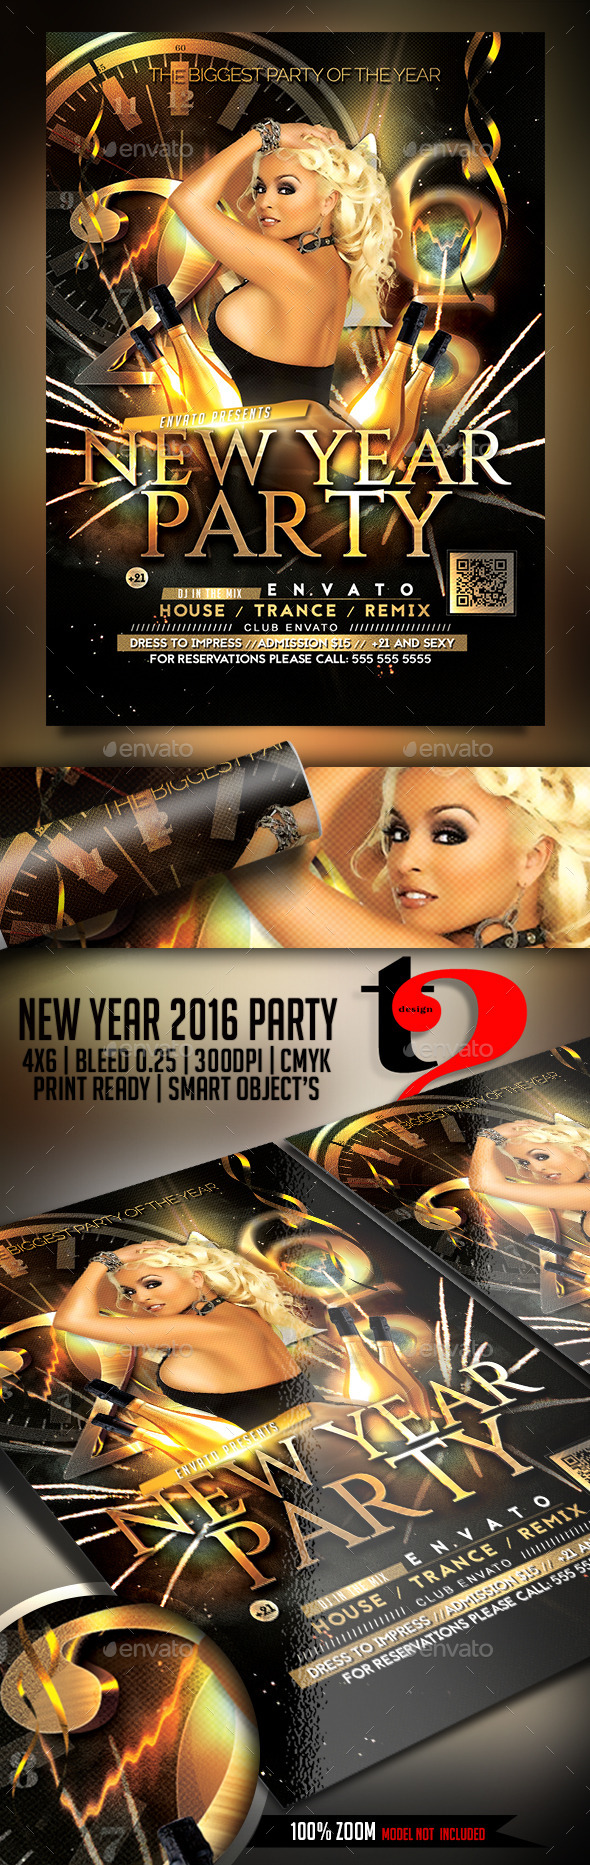 New Year 2016 Party Flyer Template - Clubs & Parties Events